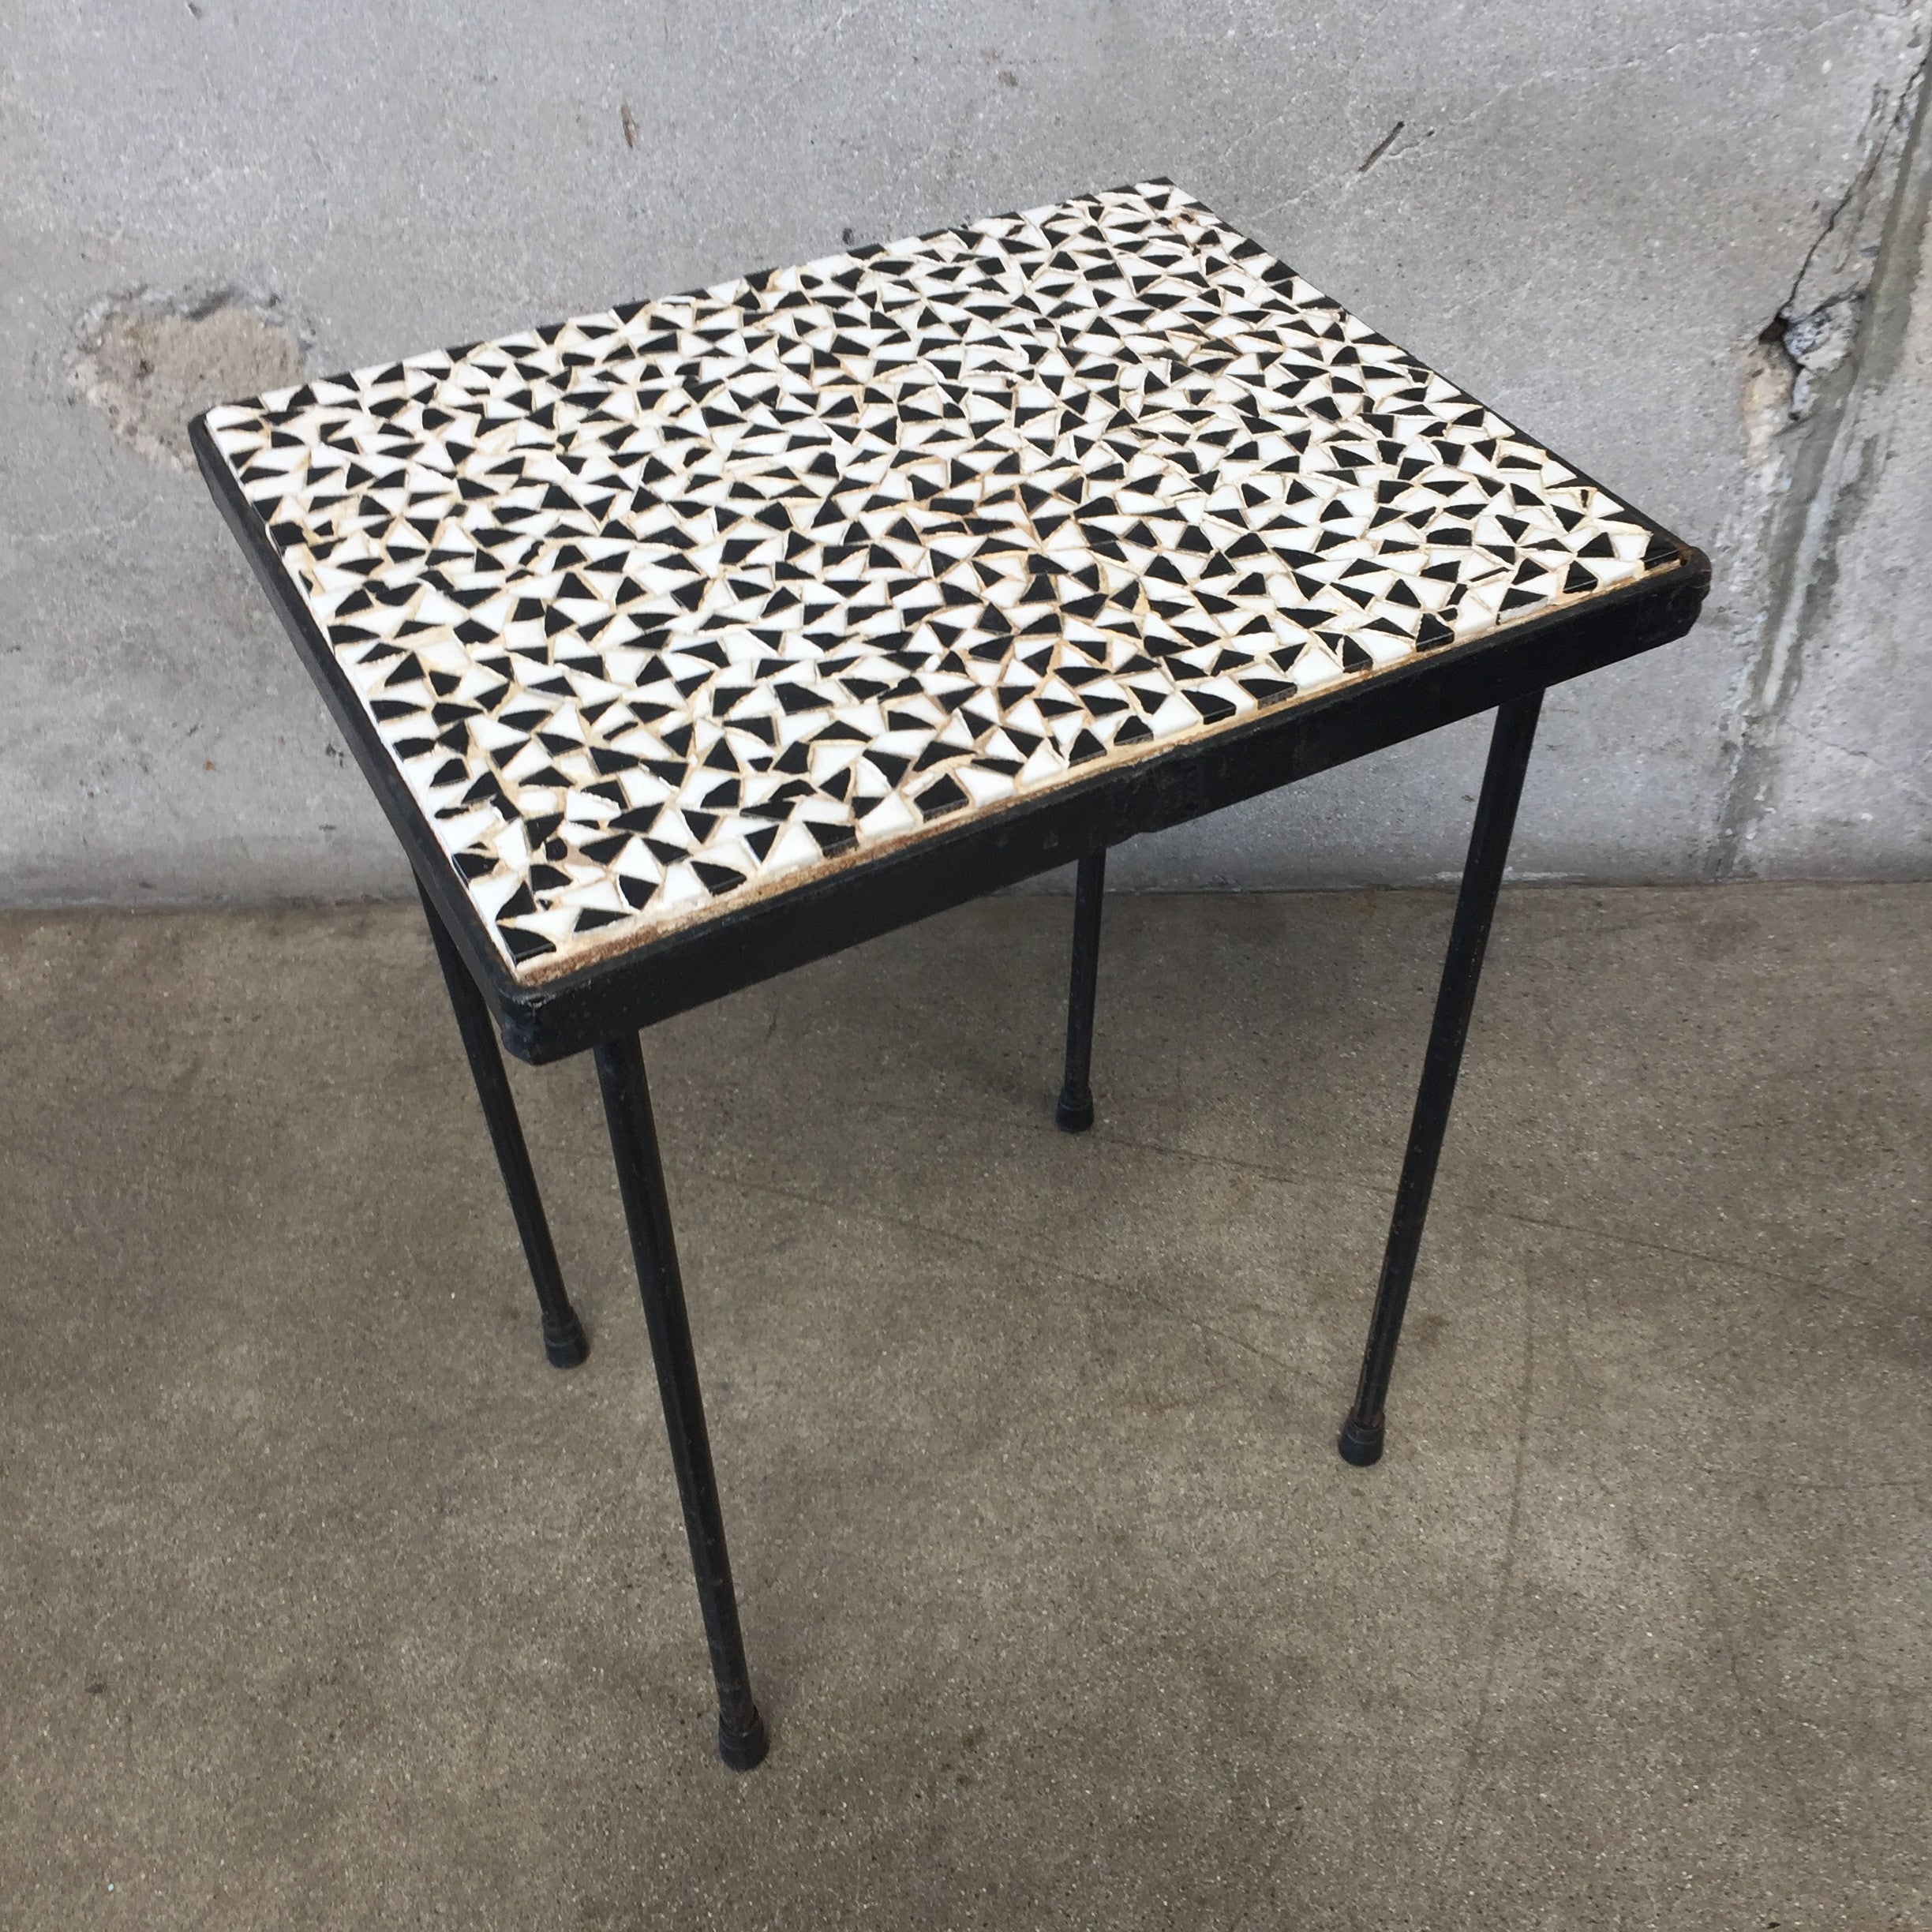 Black & White Mosaic Tile Top Table – UrbanAmericana